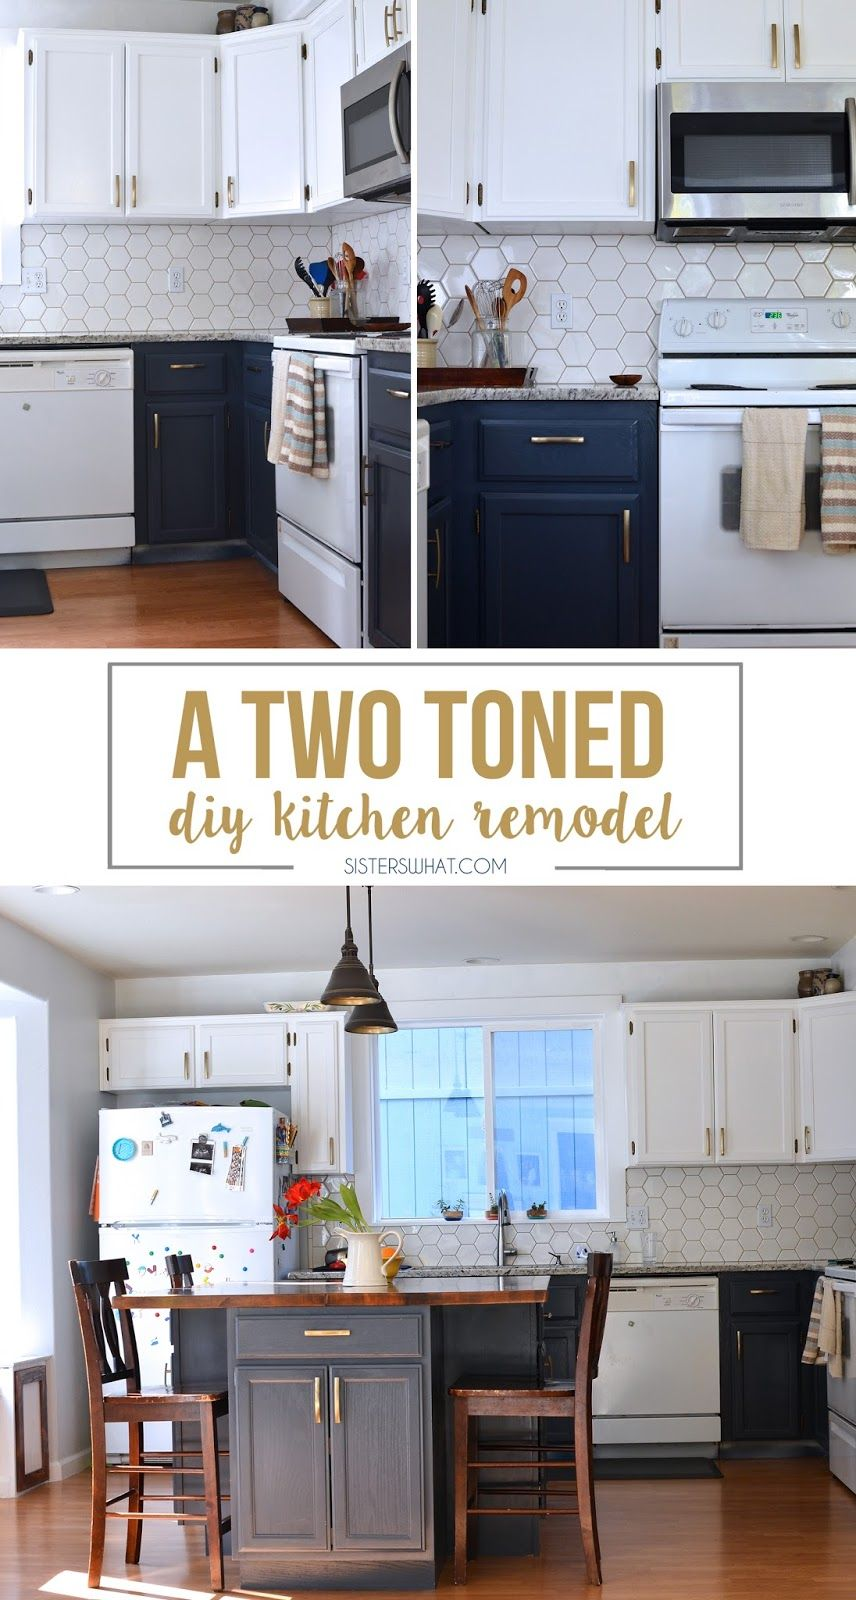 A Two Toned Diy Kitchen Remodel with Hexagon Tiles